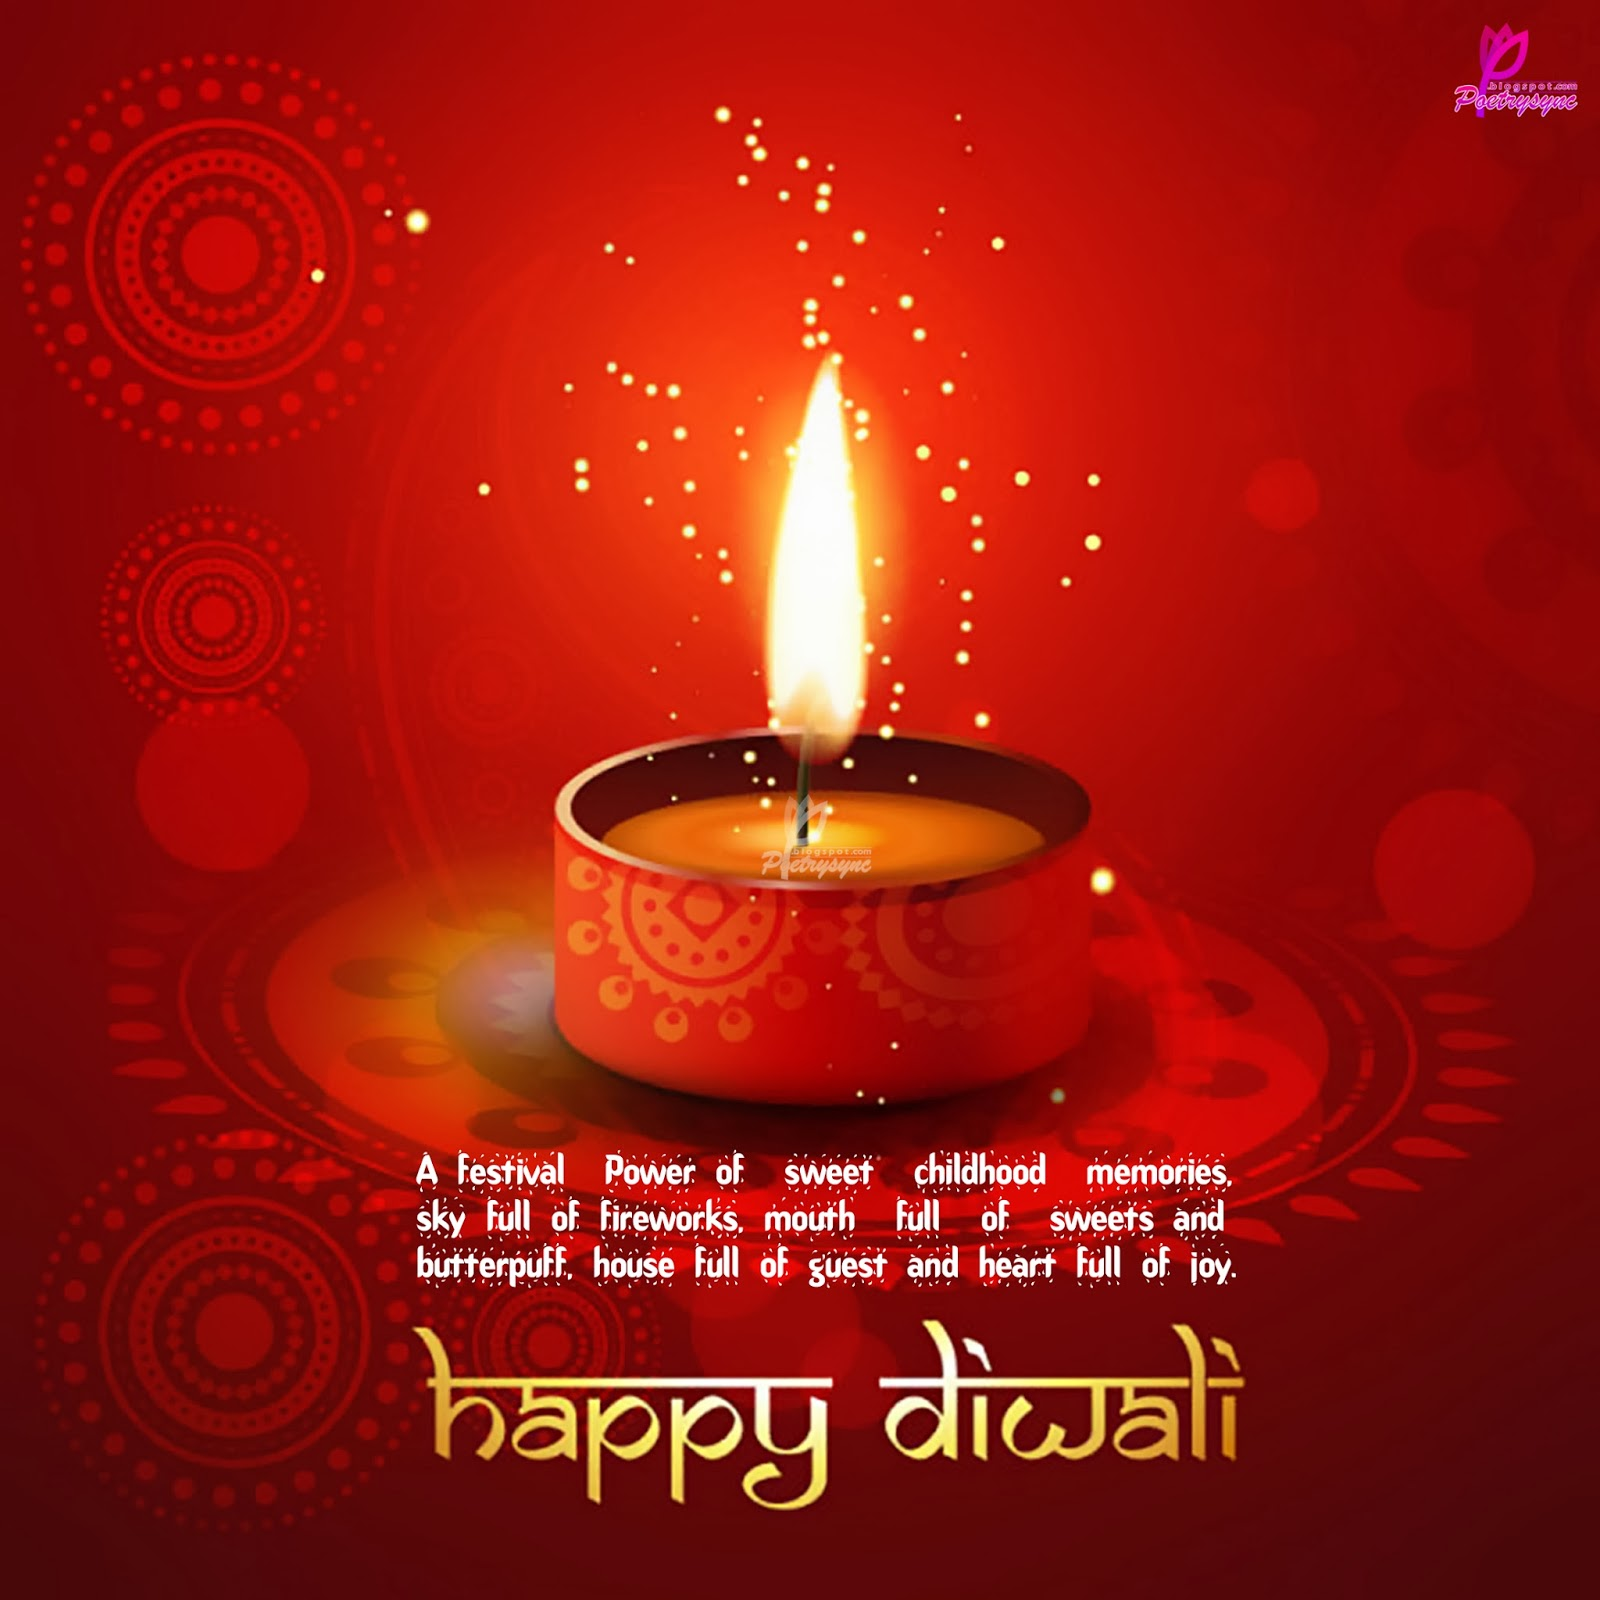 Download happy diwali and new year wallpapers gallery happy diwali and new year wallpapers kristyandbryce Gallery